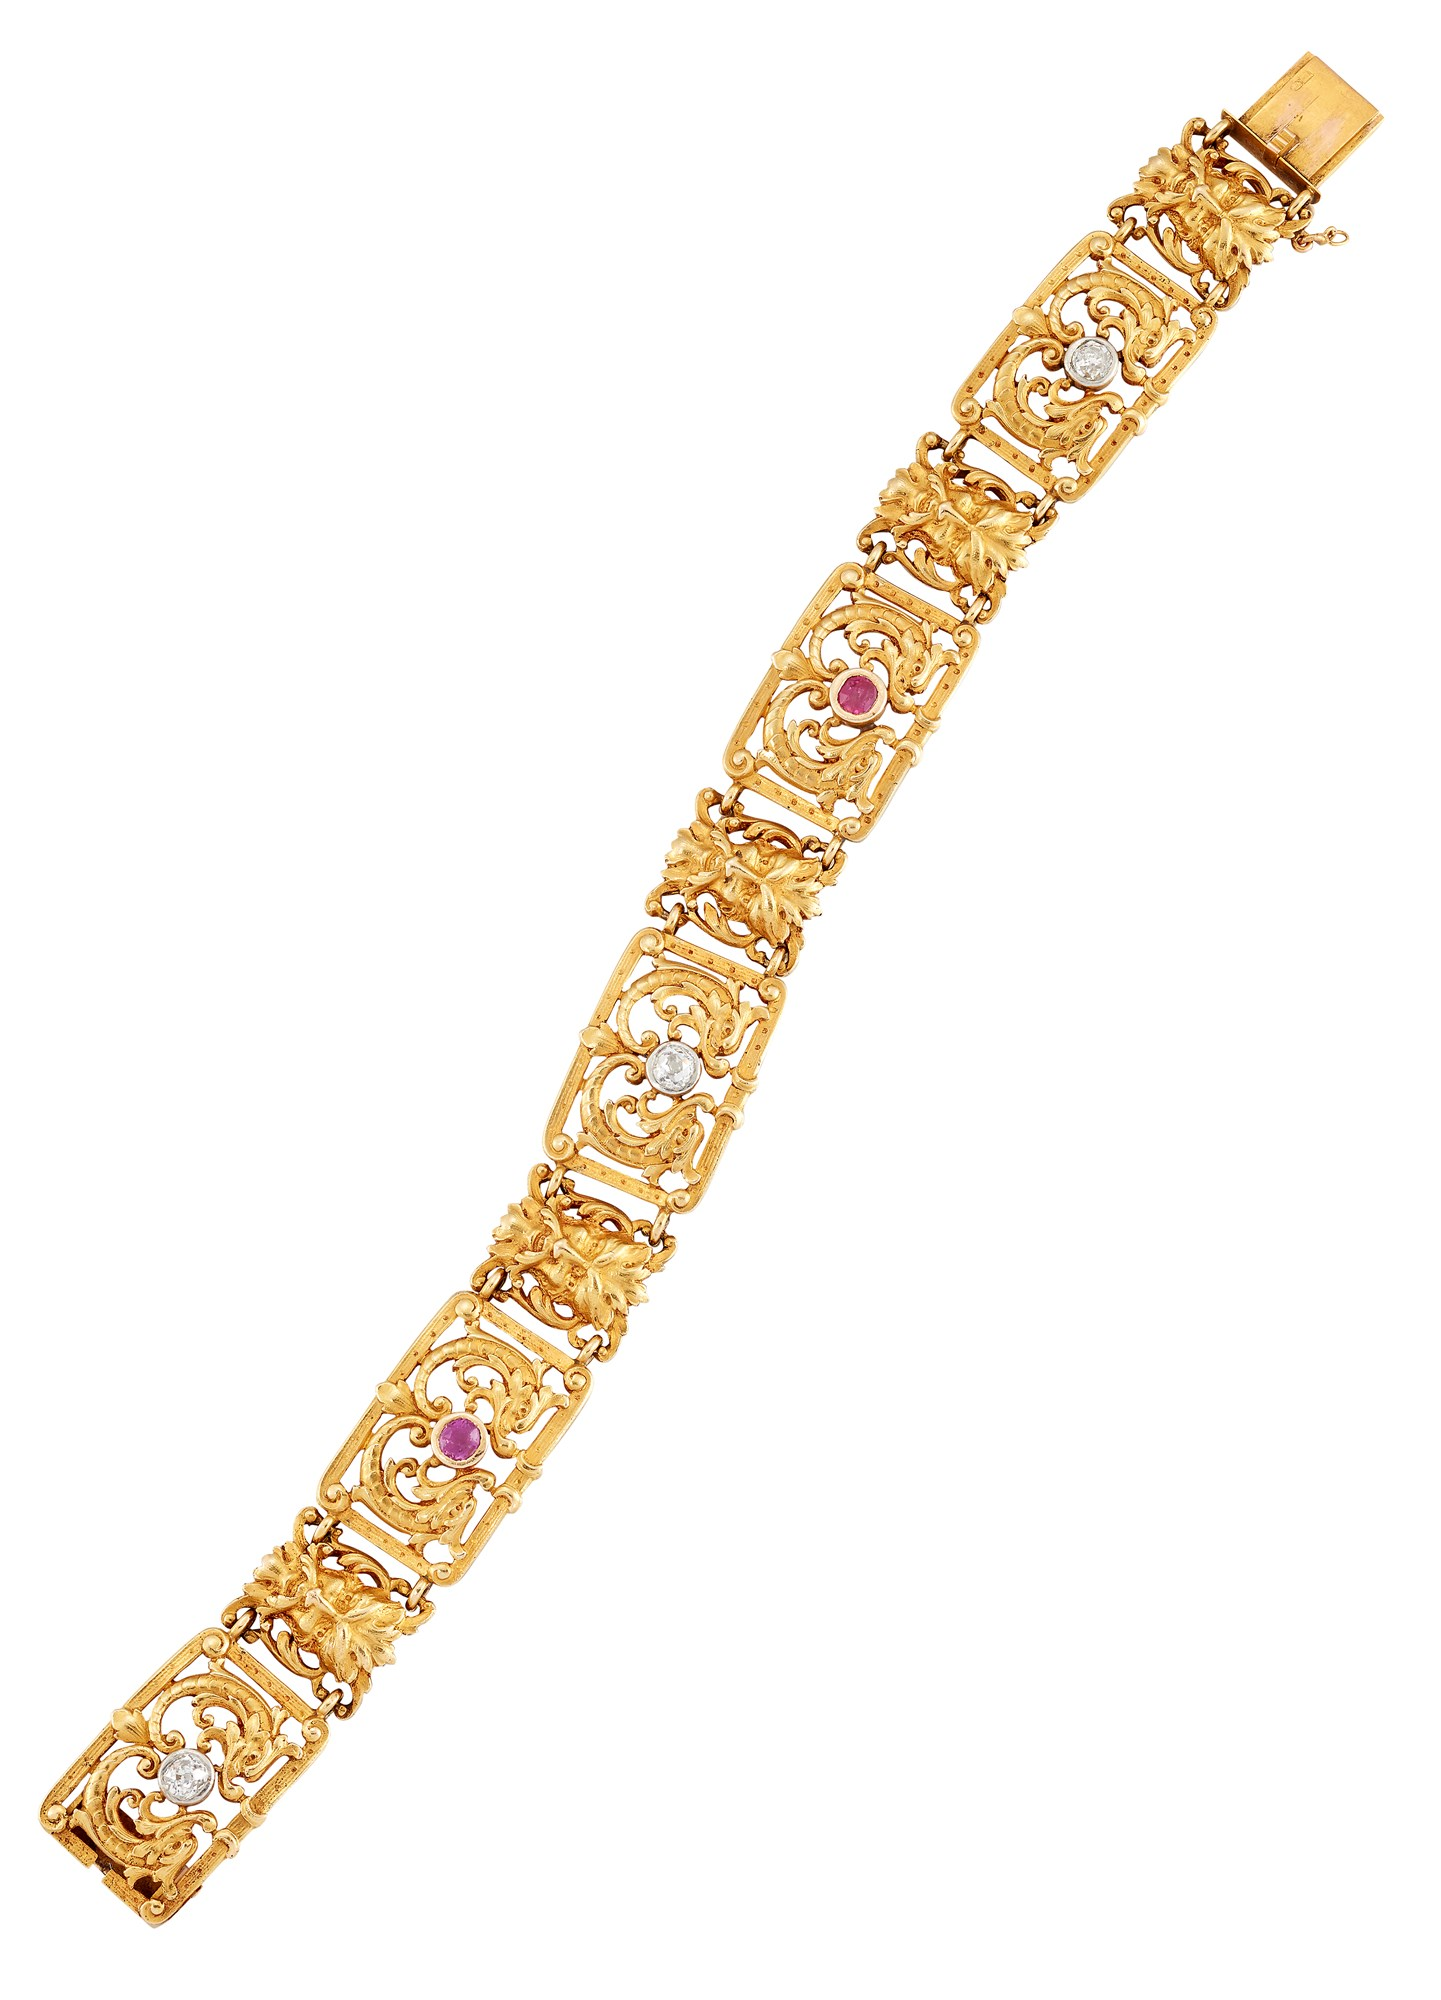 19th Century French gold diamond and ruby bracelet